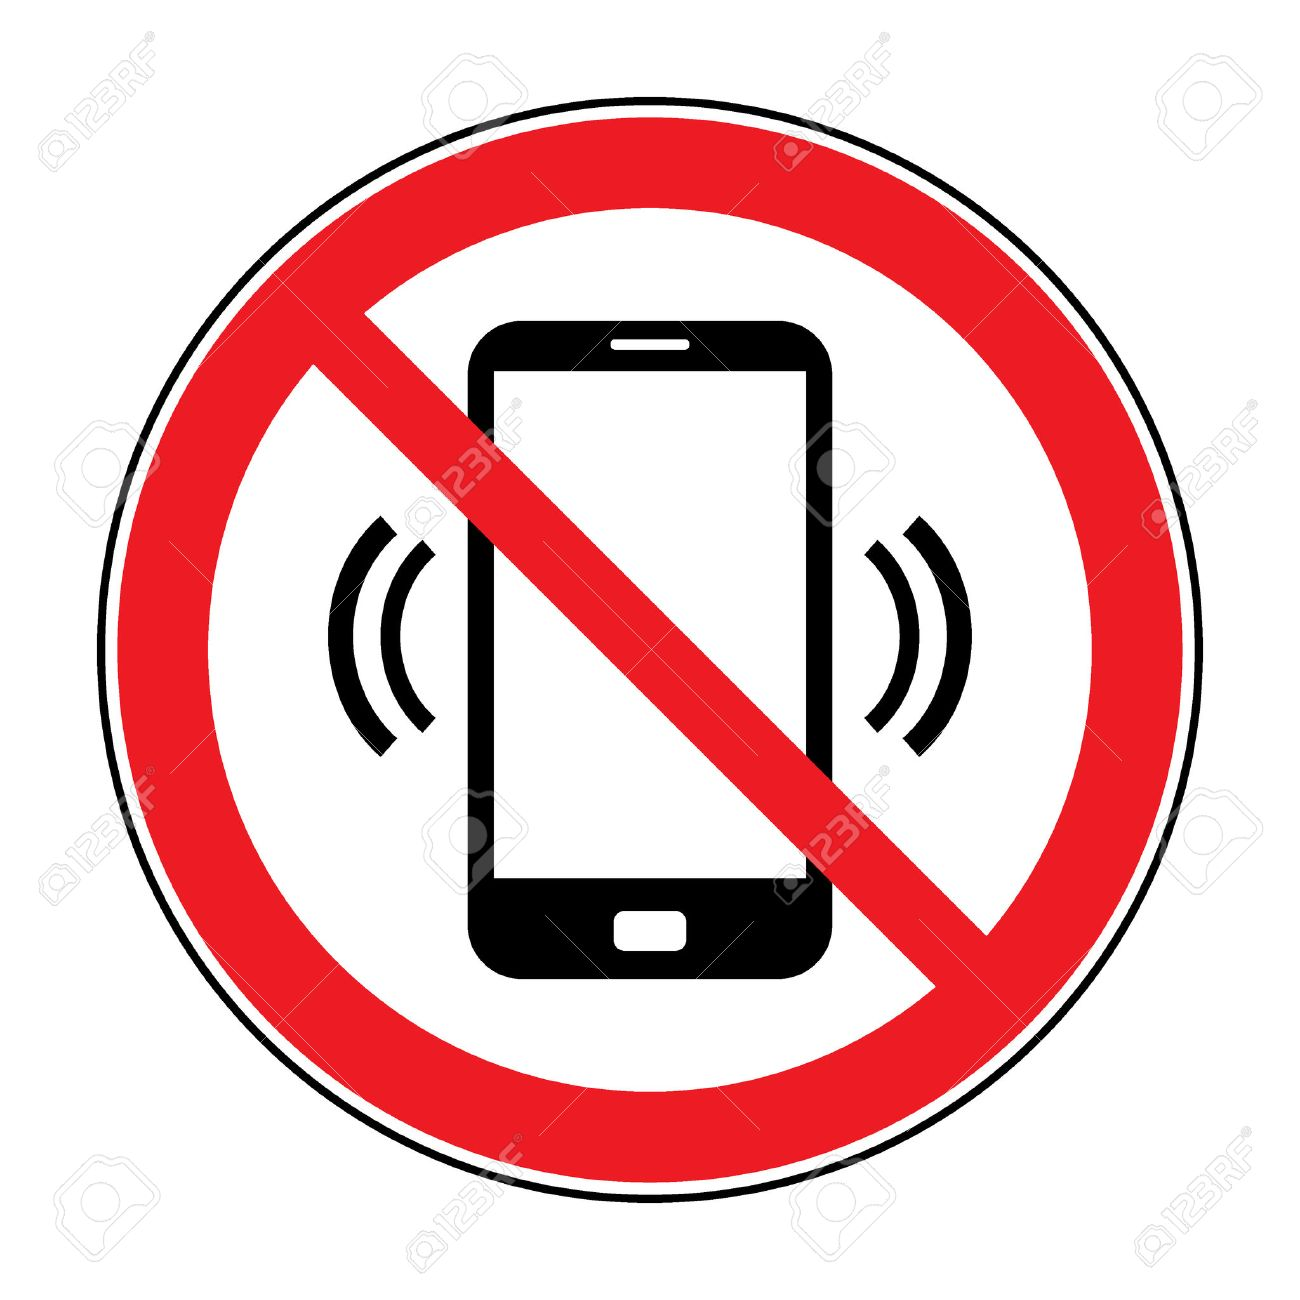 No cell phone sign. Mobile phone ringer volume mute sign. No...